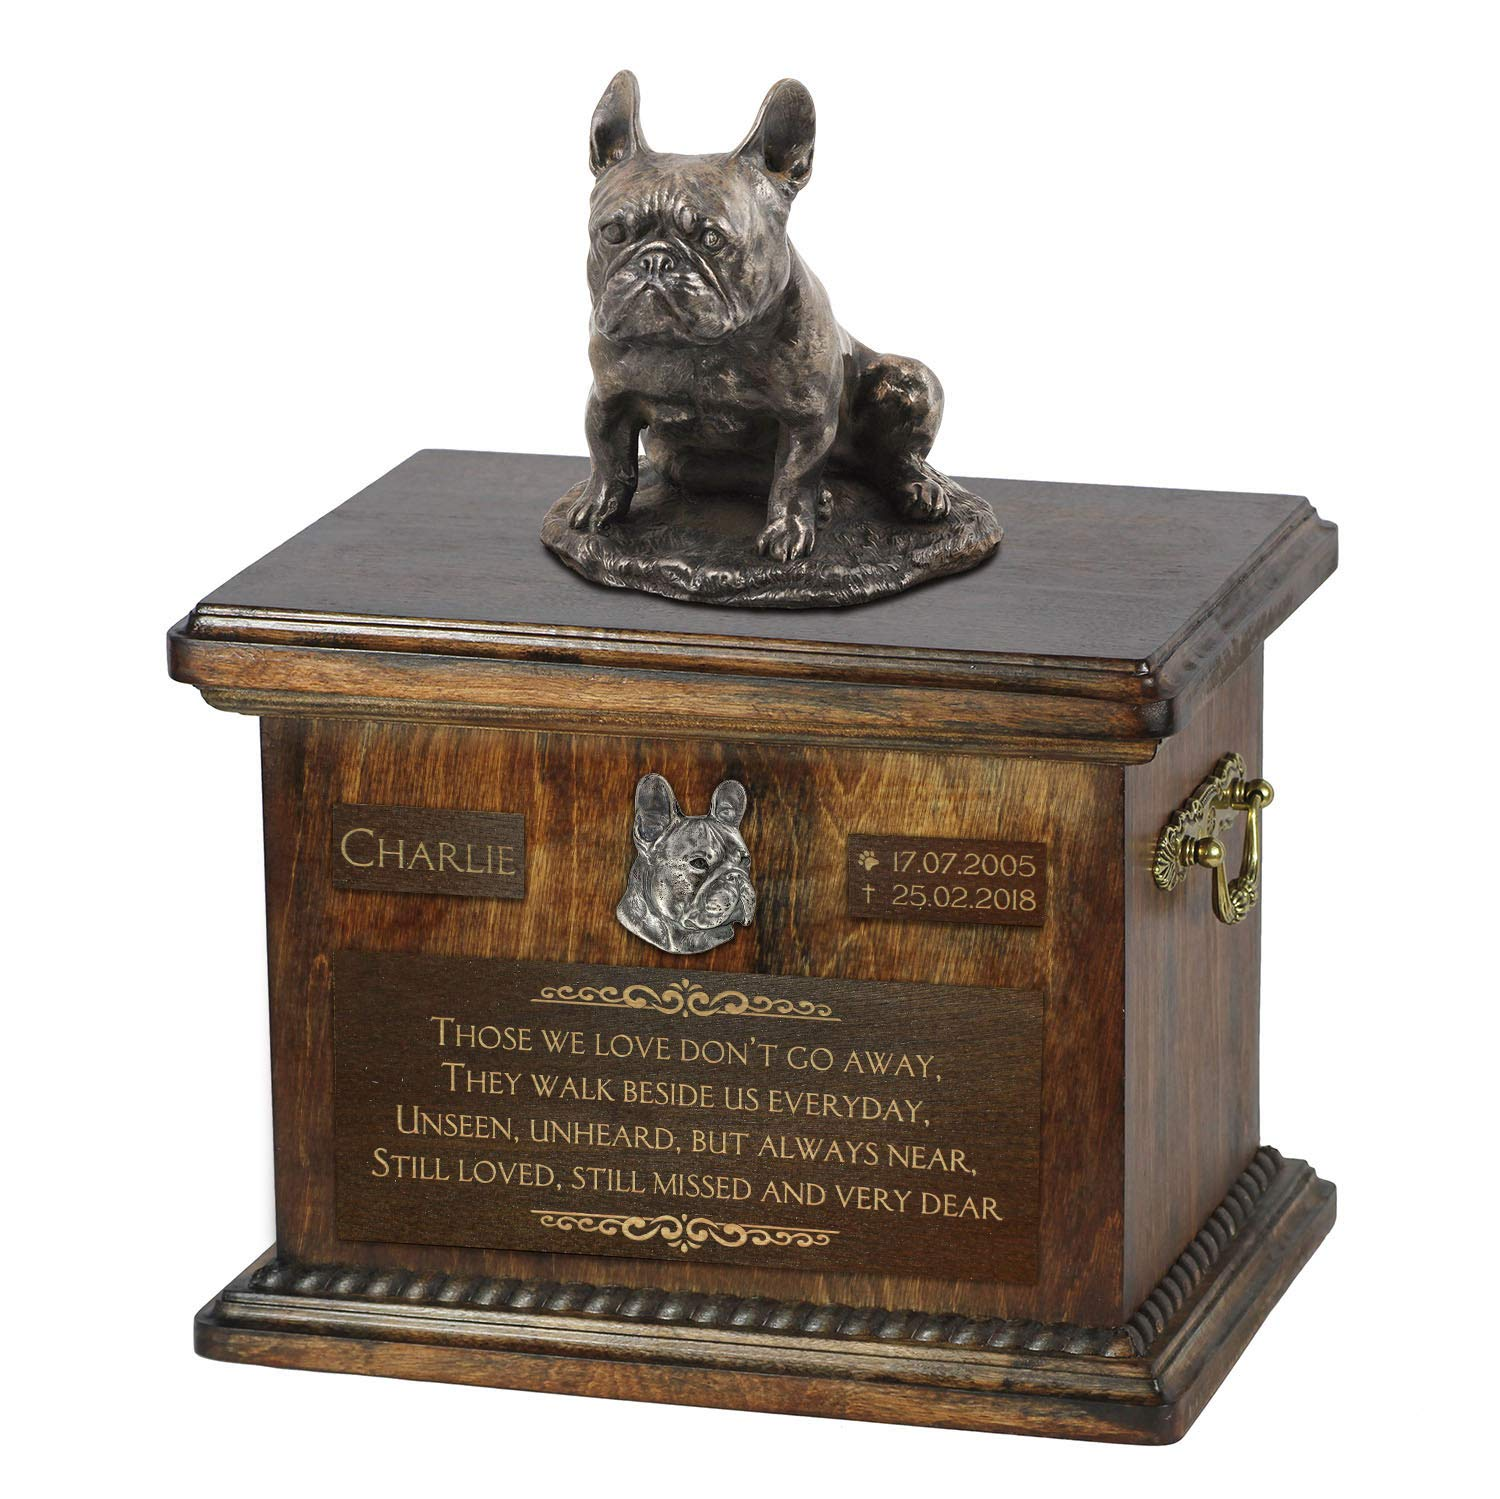 French Bulldog mama 3, Urn for Dog Ashes Memorial with Statue, Pet's Name and Quote ArtDog Personalized